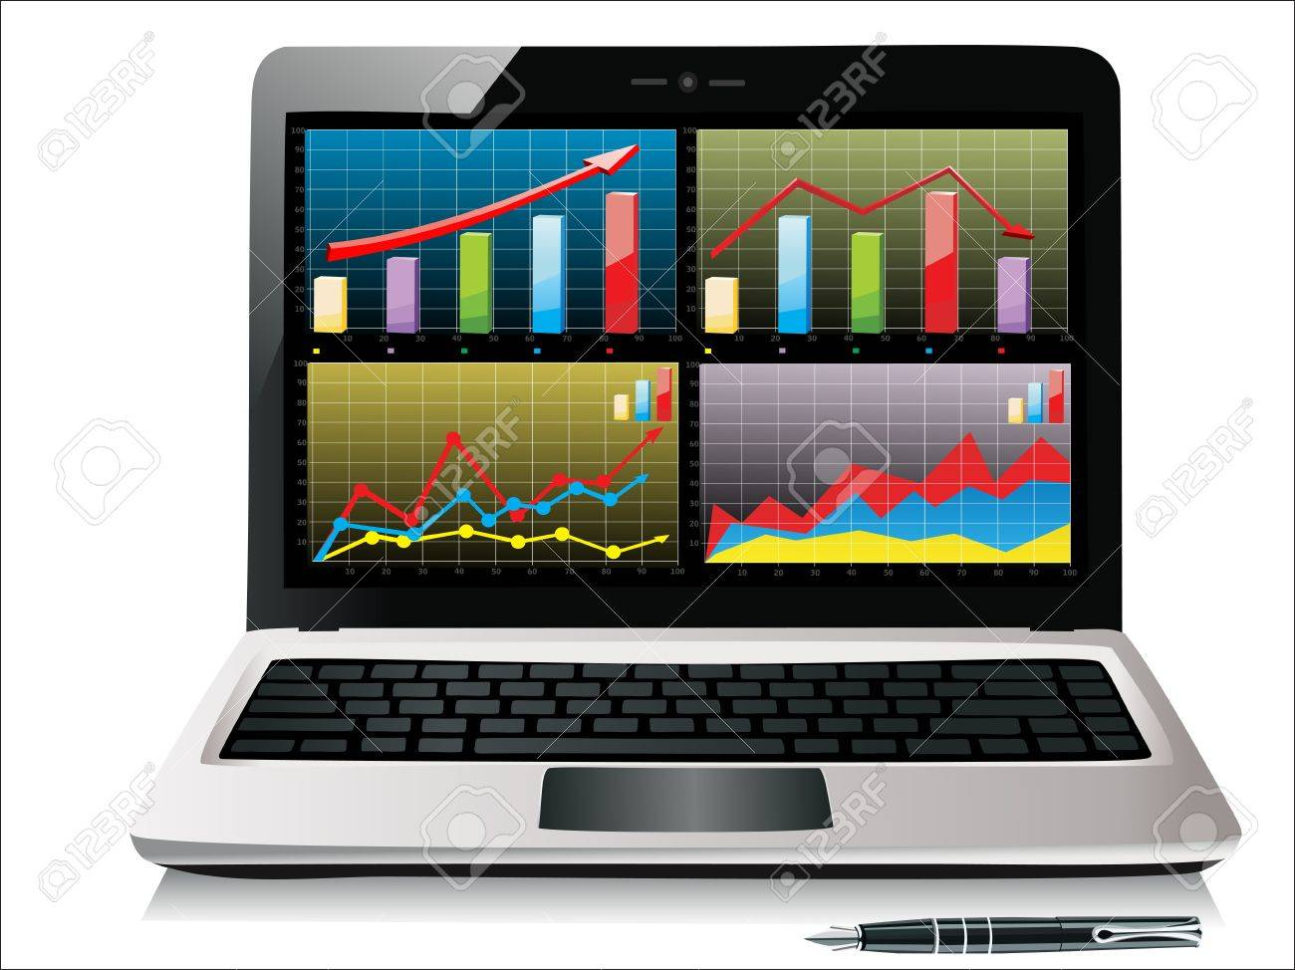 Laptop Spreadsheet With Regard To Laptop Showing A Spreadsheet With Some Charts Royalty Free Cliparts